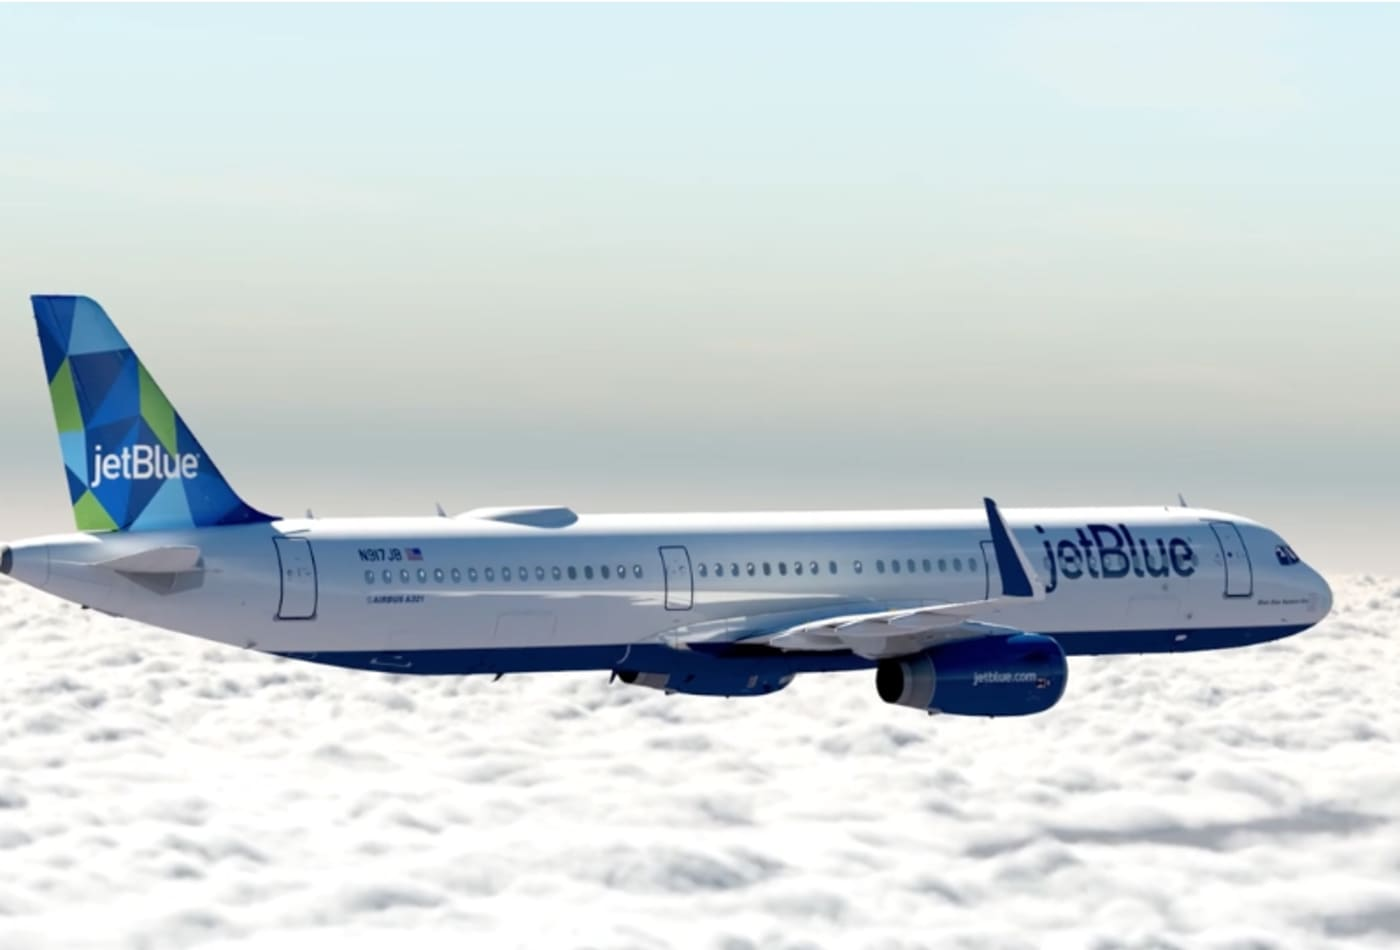 jetblue flash sale fares as low as 49 including the caribbean. Black Bedroom Furniture Sets. Home Design Ideas